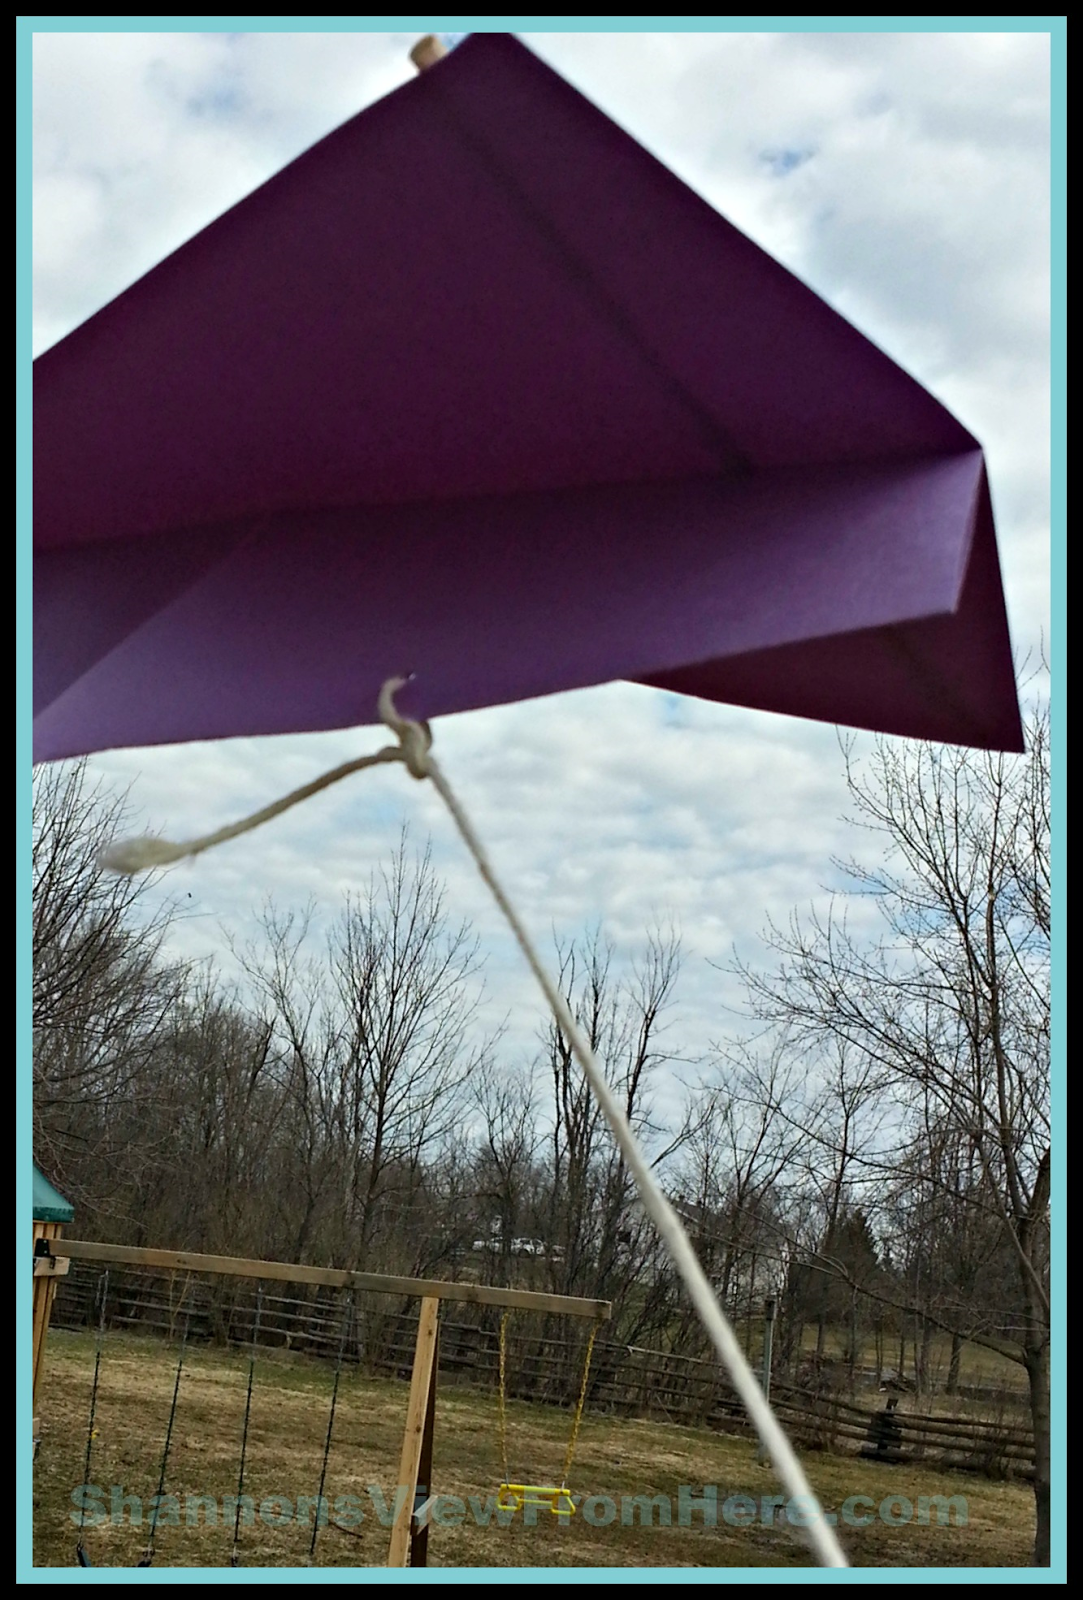 Feel free to check out the details for How to Make a Homemade Paper Kite Guaranteed to Fly .